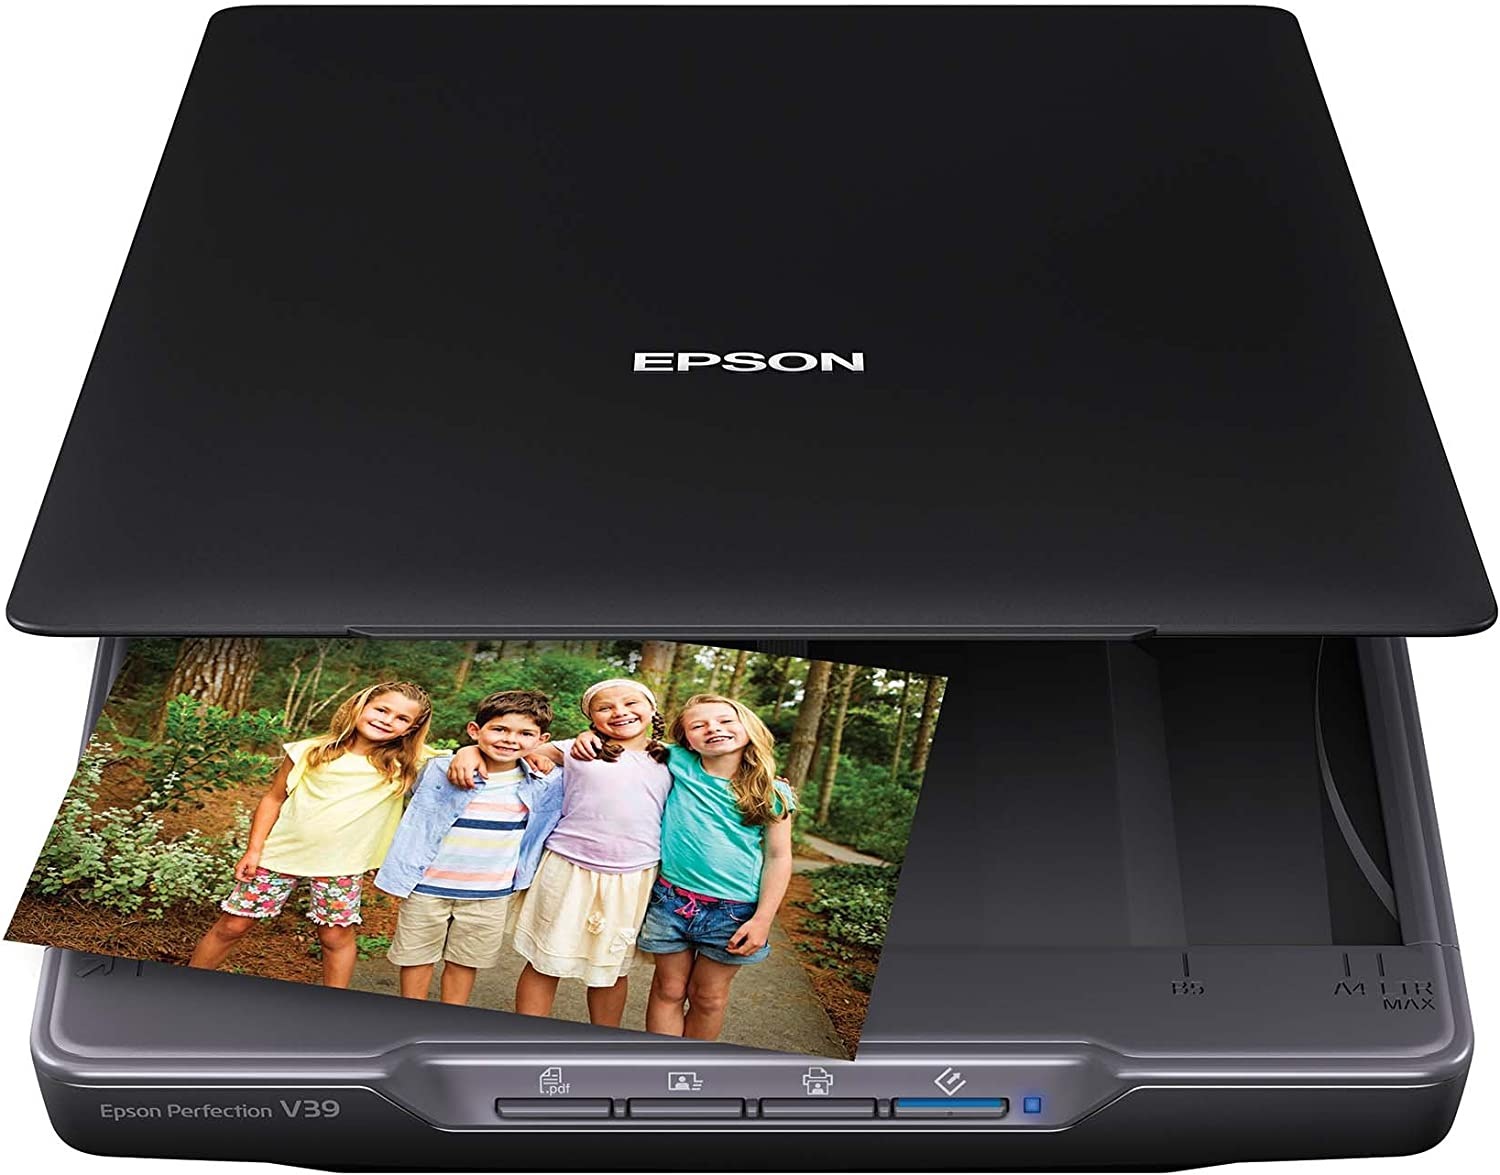 Epson Perfection V39 Color Photo & Document Scanner with Scan-To-Cloud & 4800 Optical Resolution,Black: Electronics